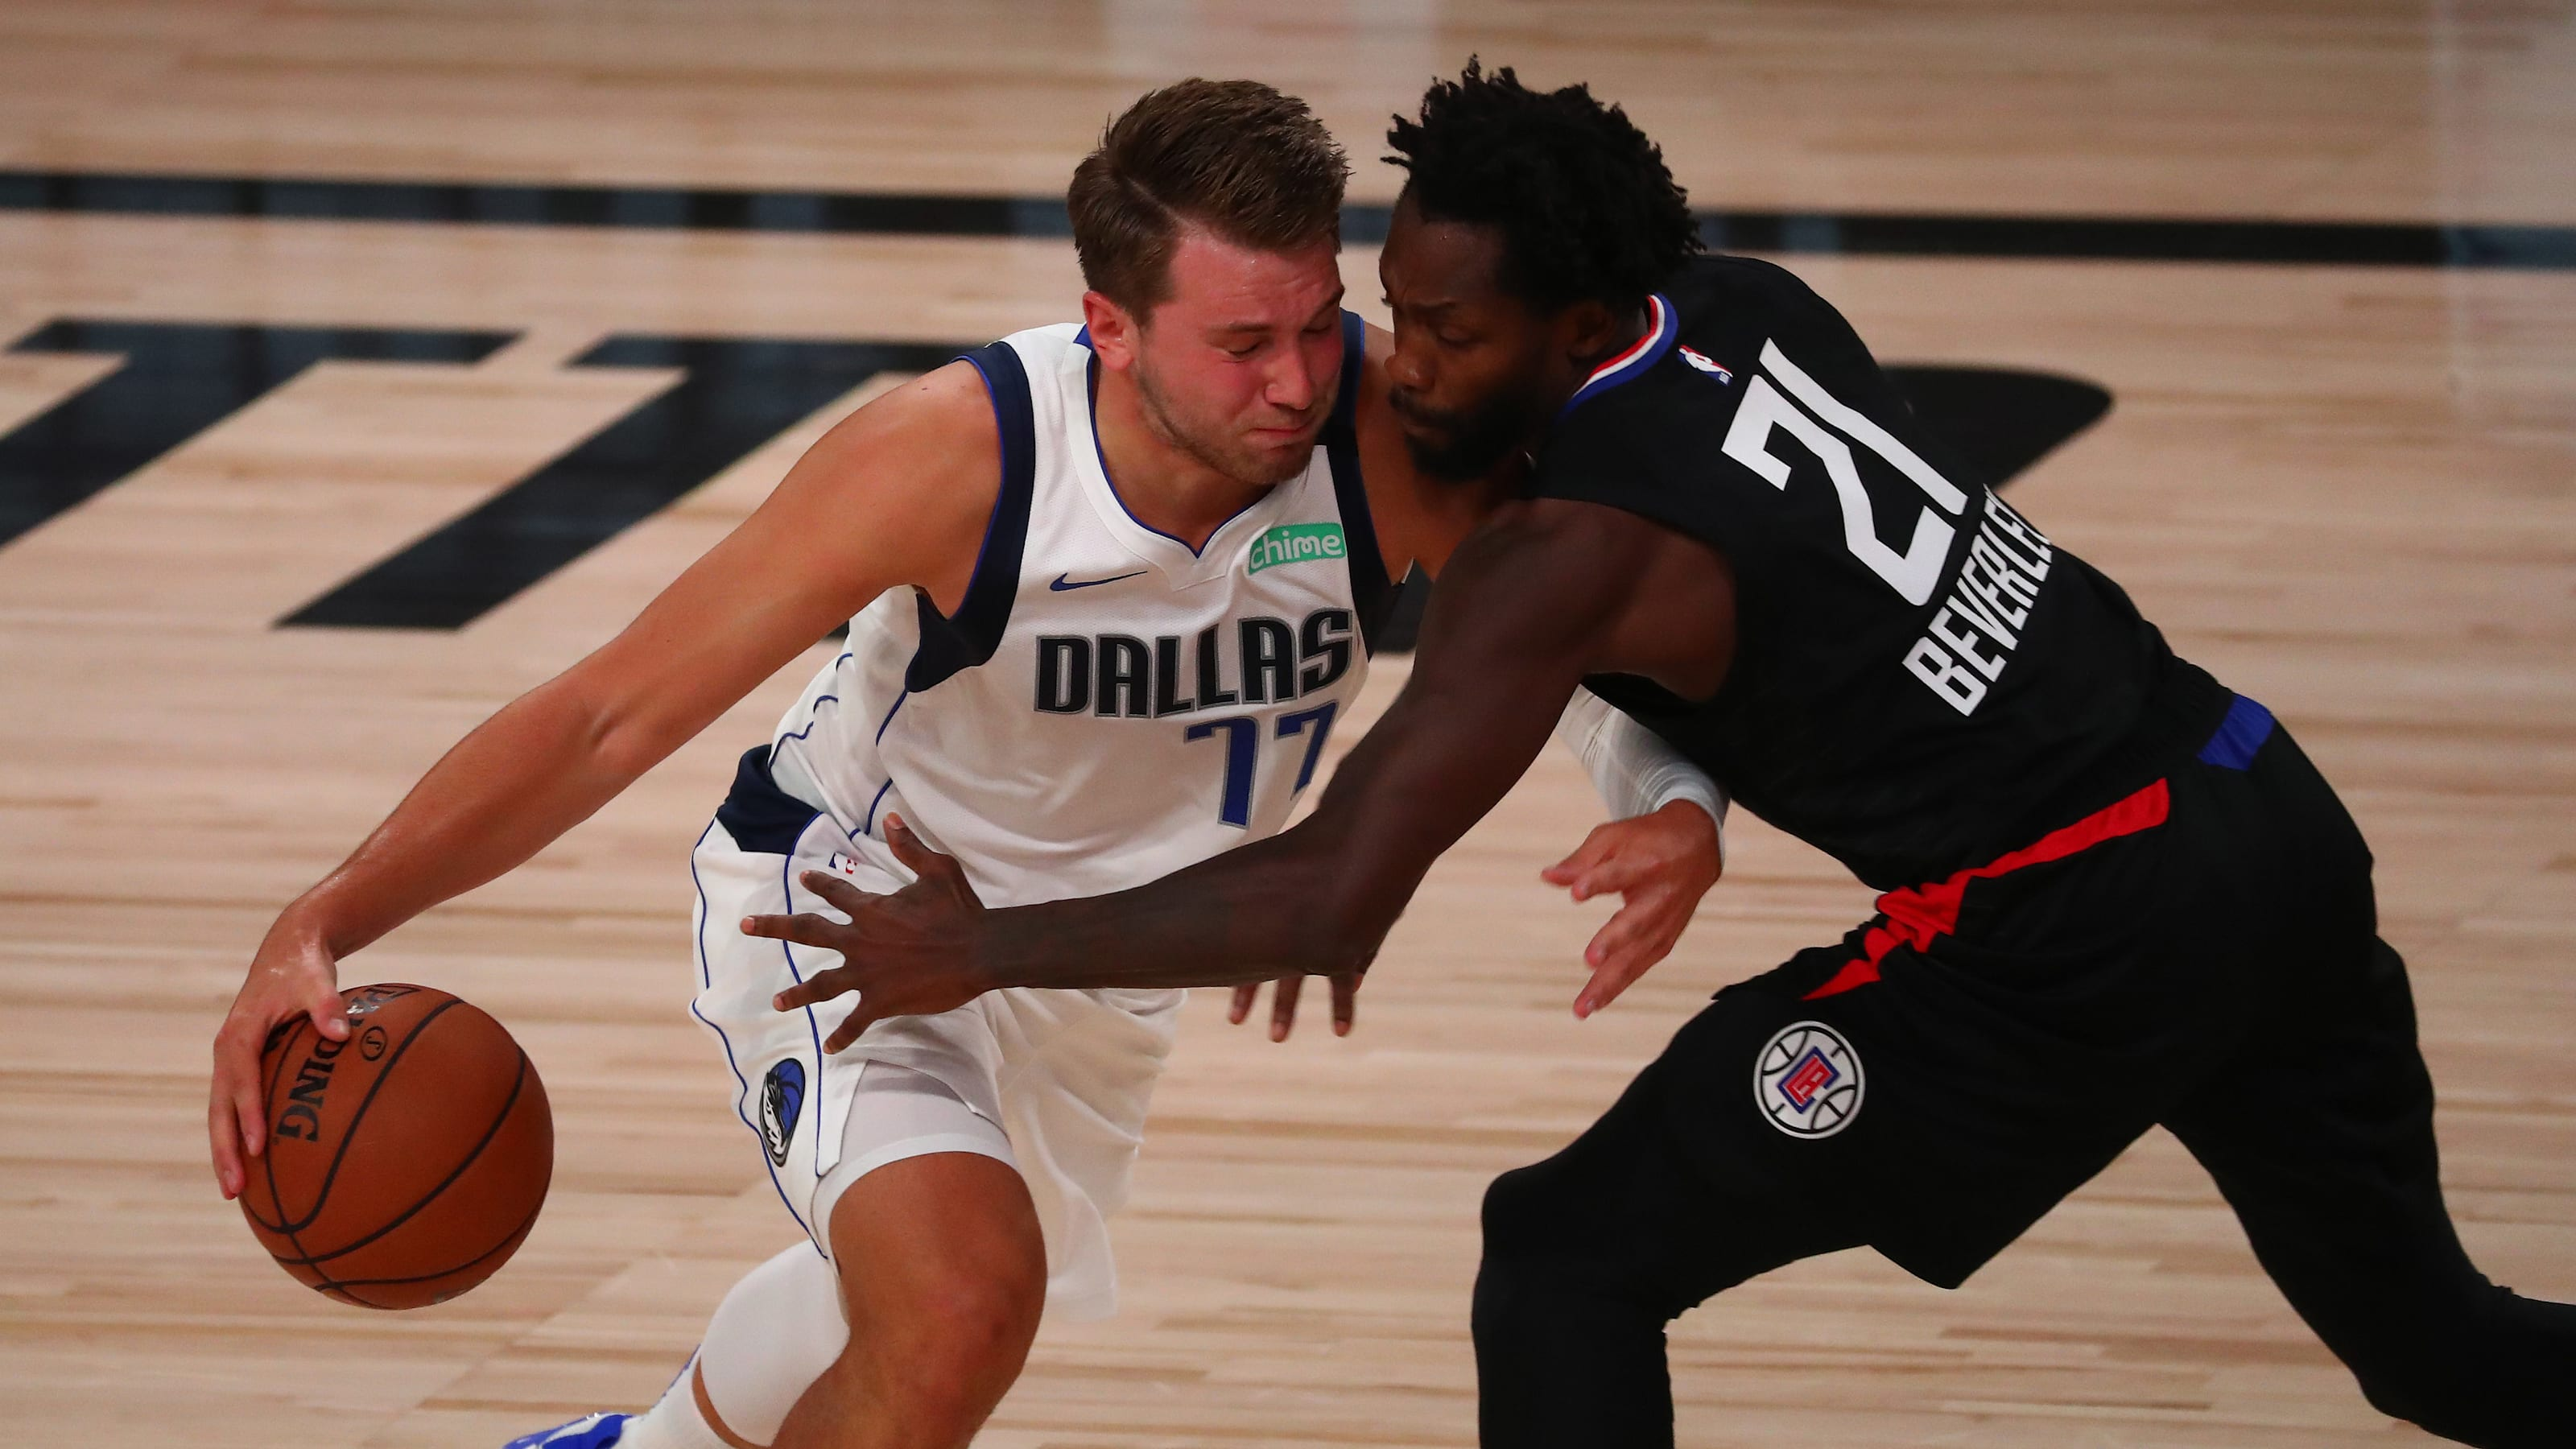 Los Angeles Clippers Vs Dallas Mavericks Nba Playoffs Schedule Times And Where To Watch Live In India